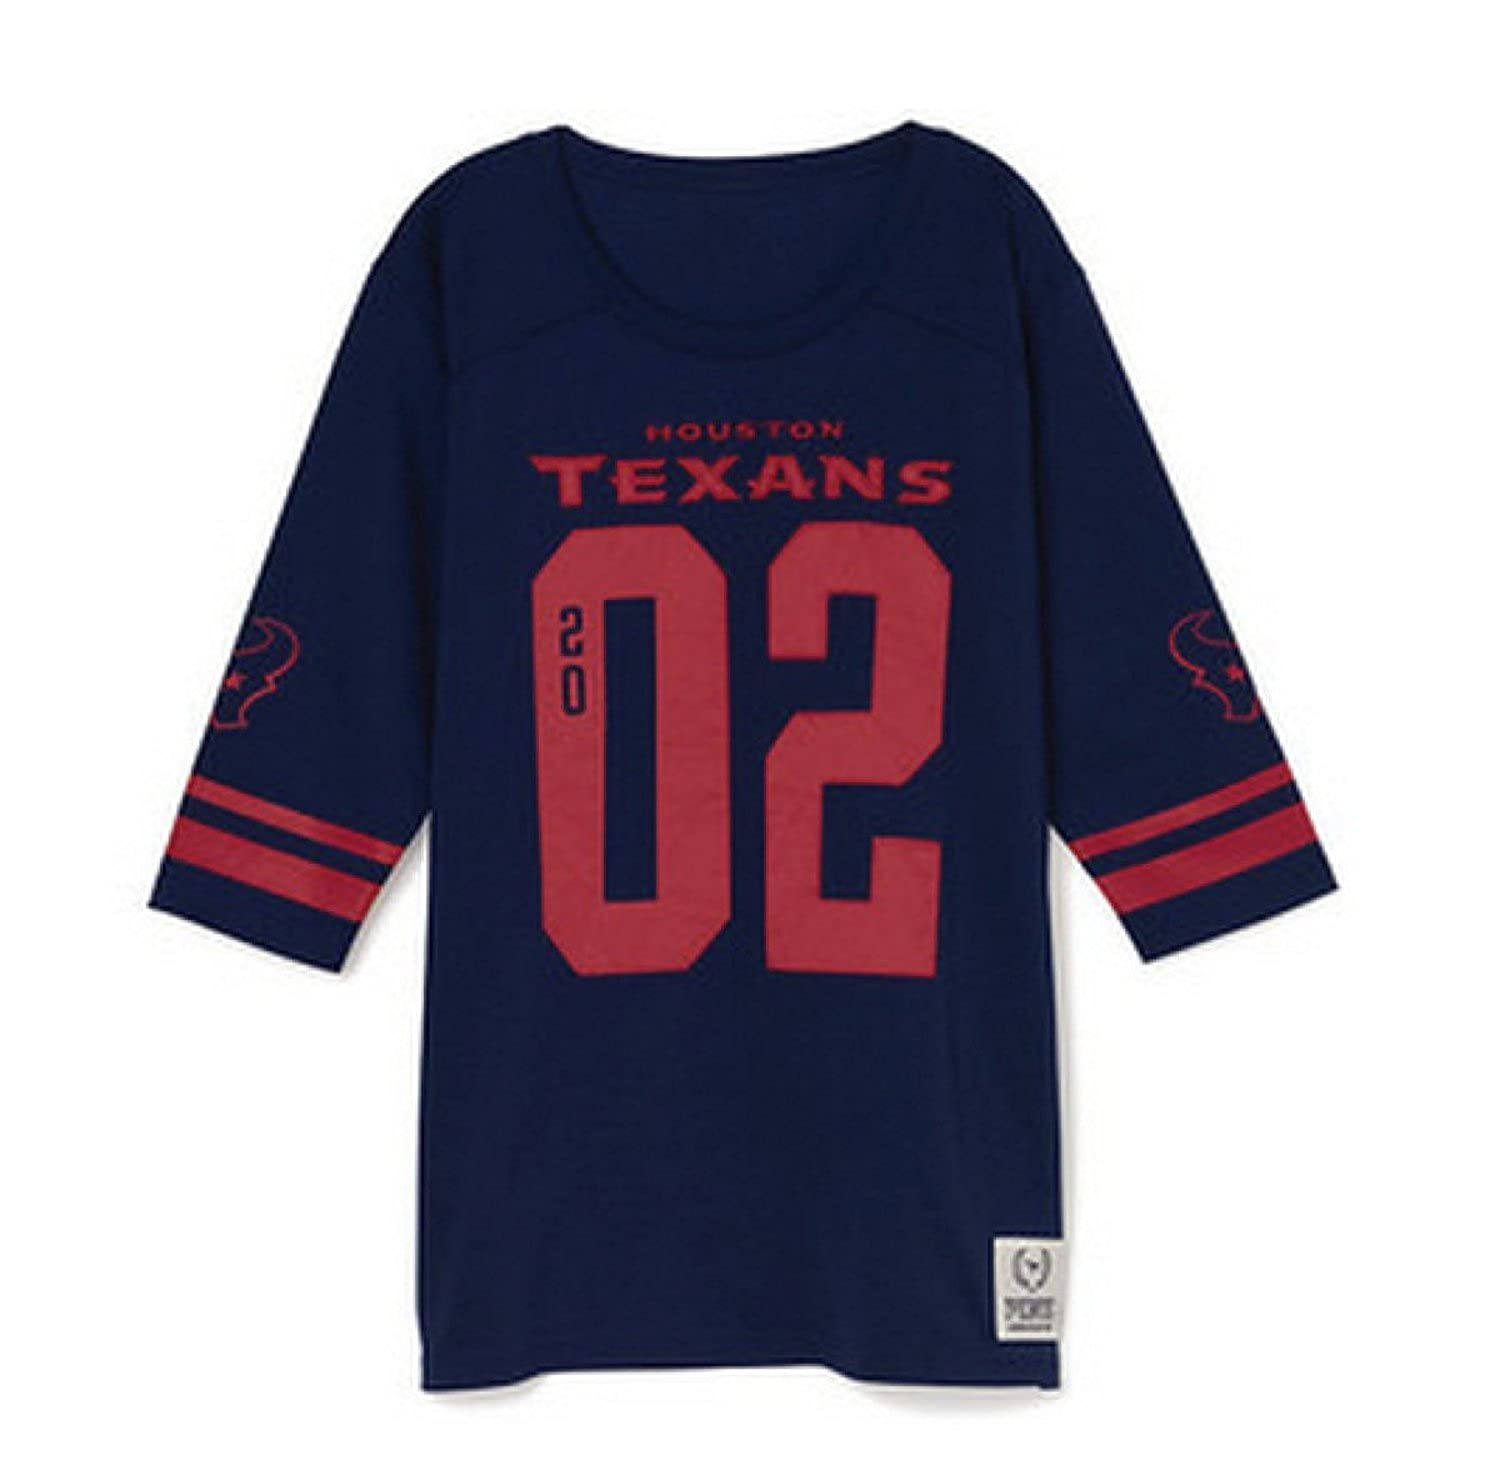 Victoria s Secret PINK Houston Texans Jersey T-shirt Navy Blue (X-Small) at  Amazon Women s Clothing store  4bd97a3ca403